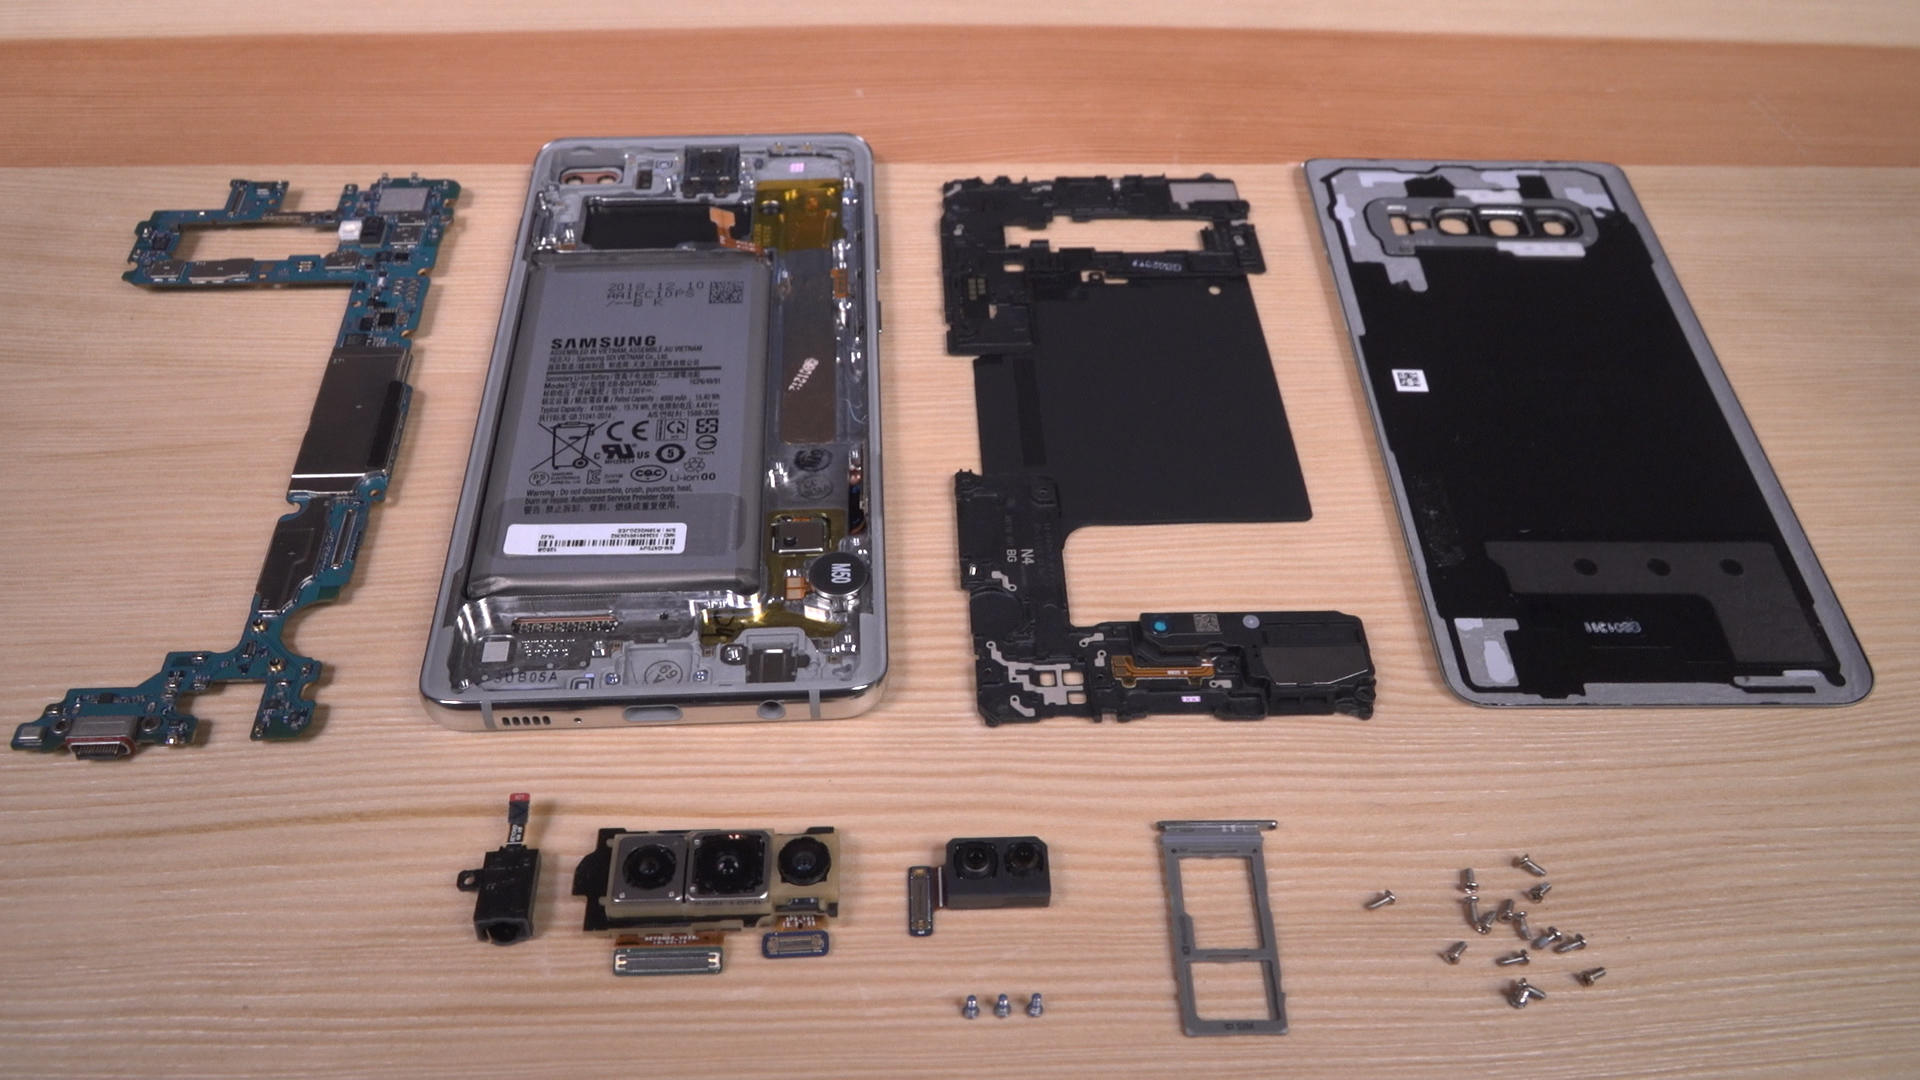 Video: Samsung Galaxy S10 Plus teardown: What's inside?